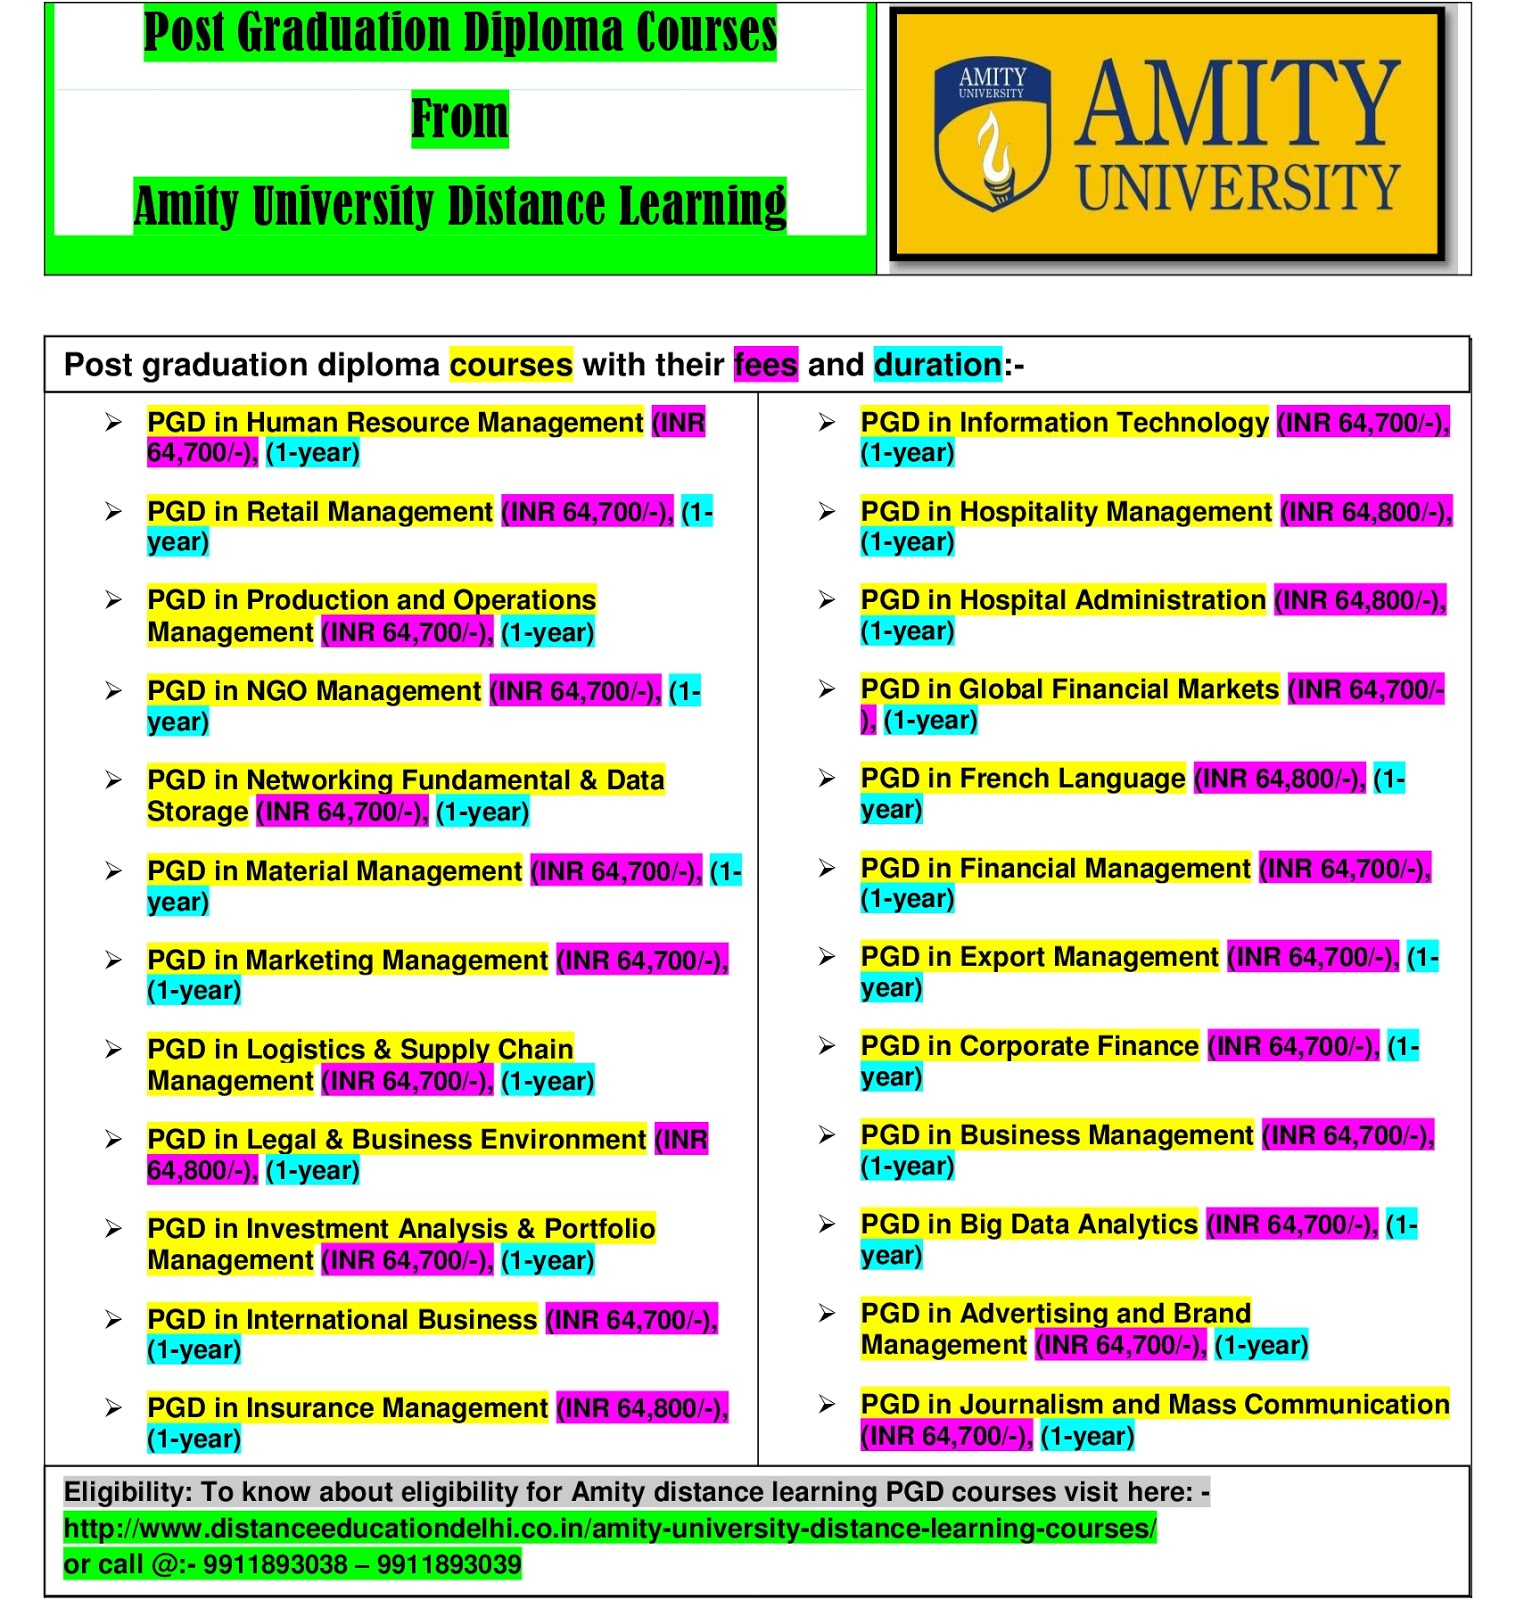 Post graduation diploma courses from amity university distance learning